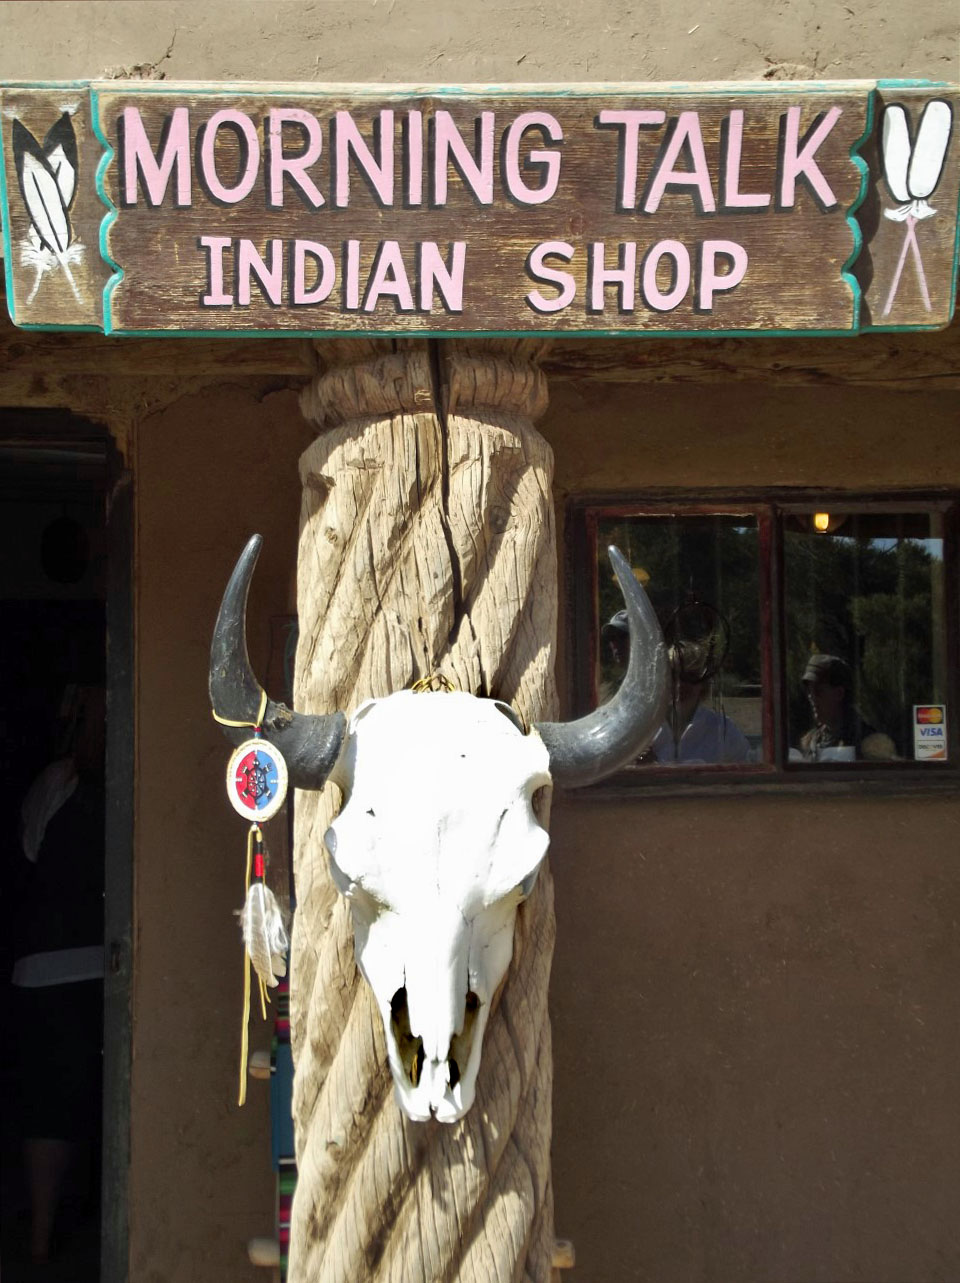 Cow's skull on wall under shop sign